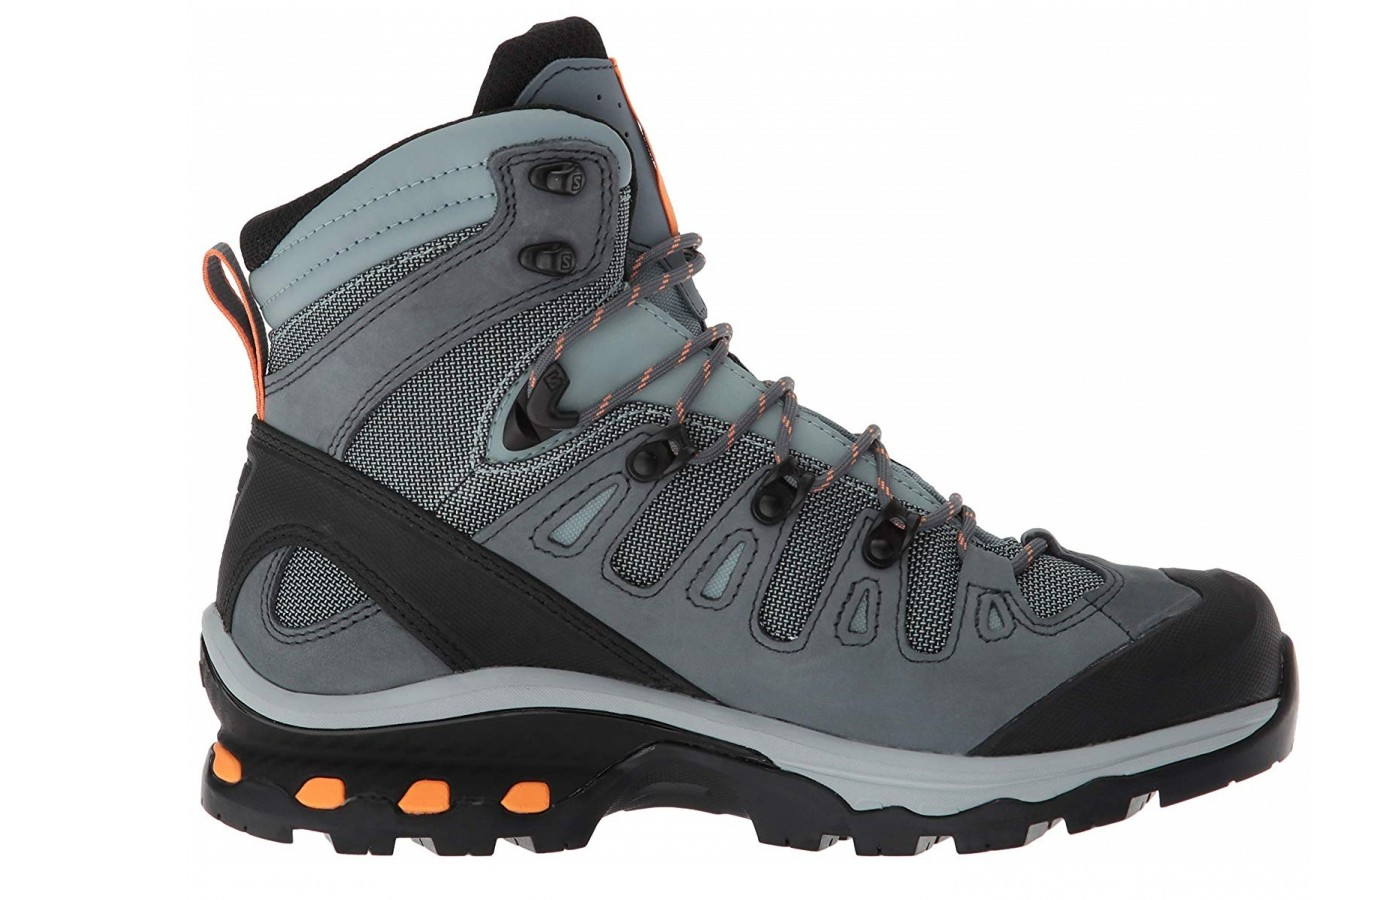 The Salomon Quest 4D 3 has a 4D Advanced Chassis for better forefoot flexion.